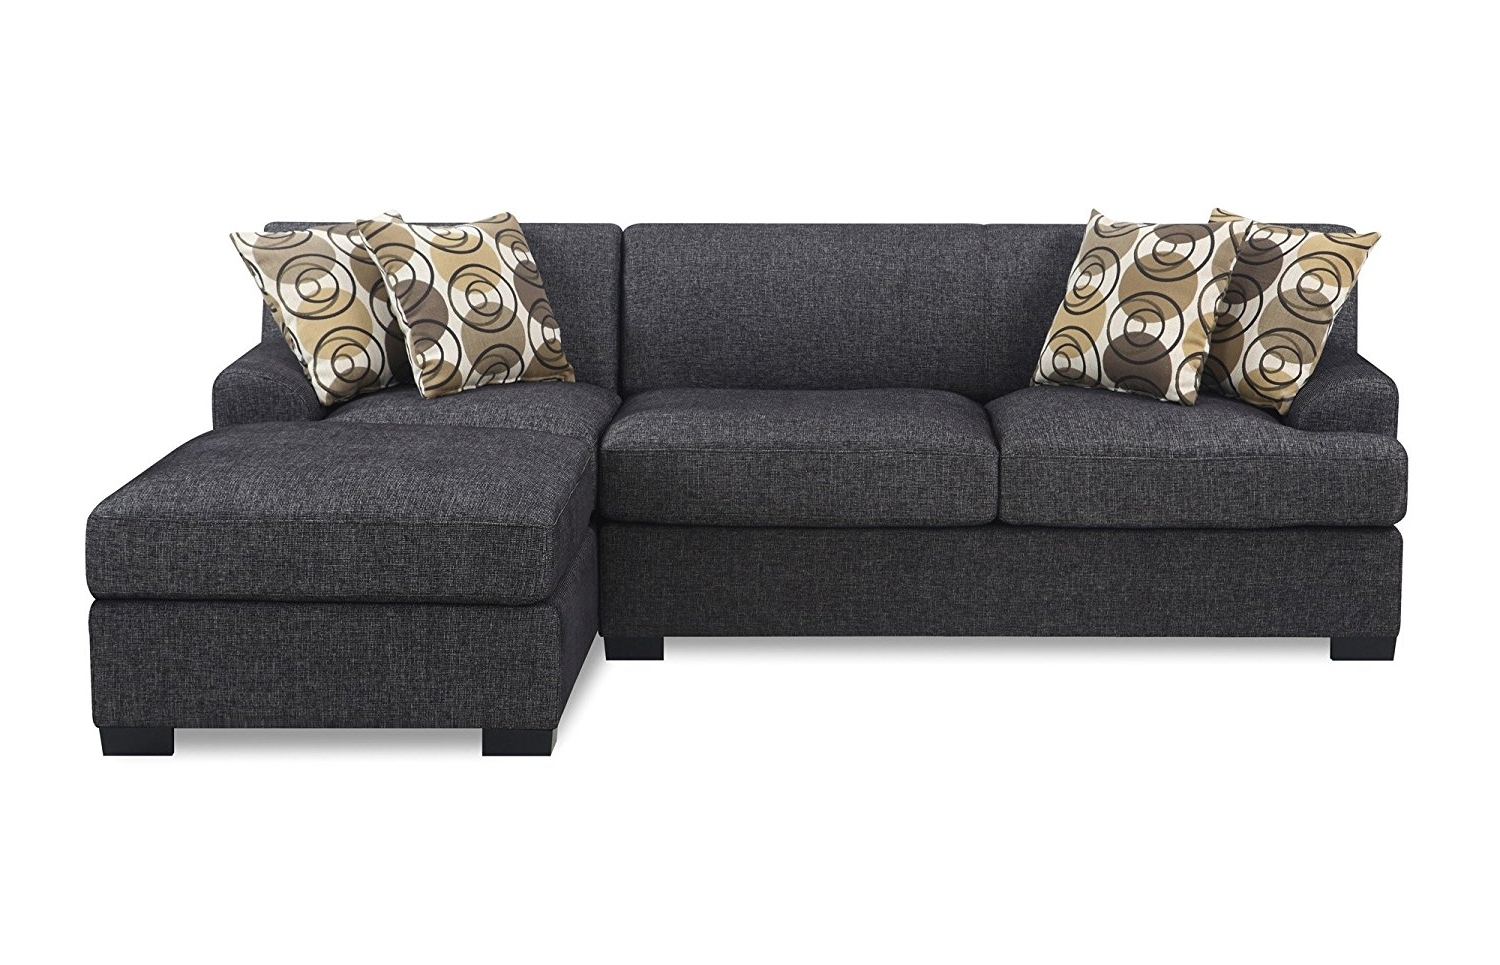 Well Known Loveseat Chaises In Amazon: Bobkona Benford 2 Piece Chaise Loveseat Sectional Sofa (View 7 of 15)